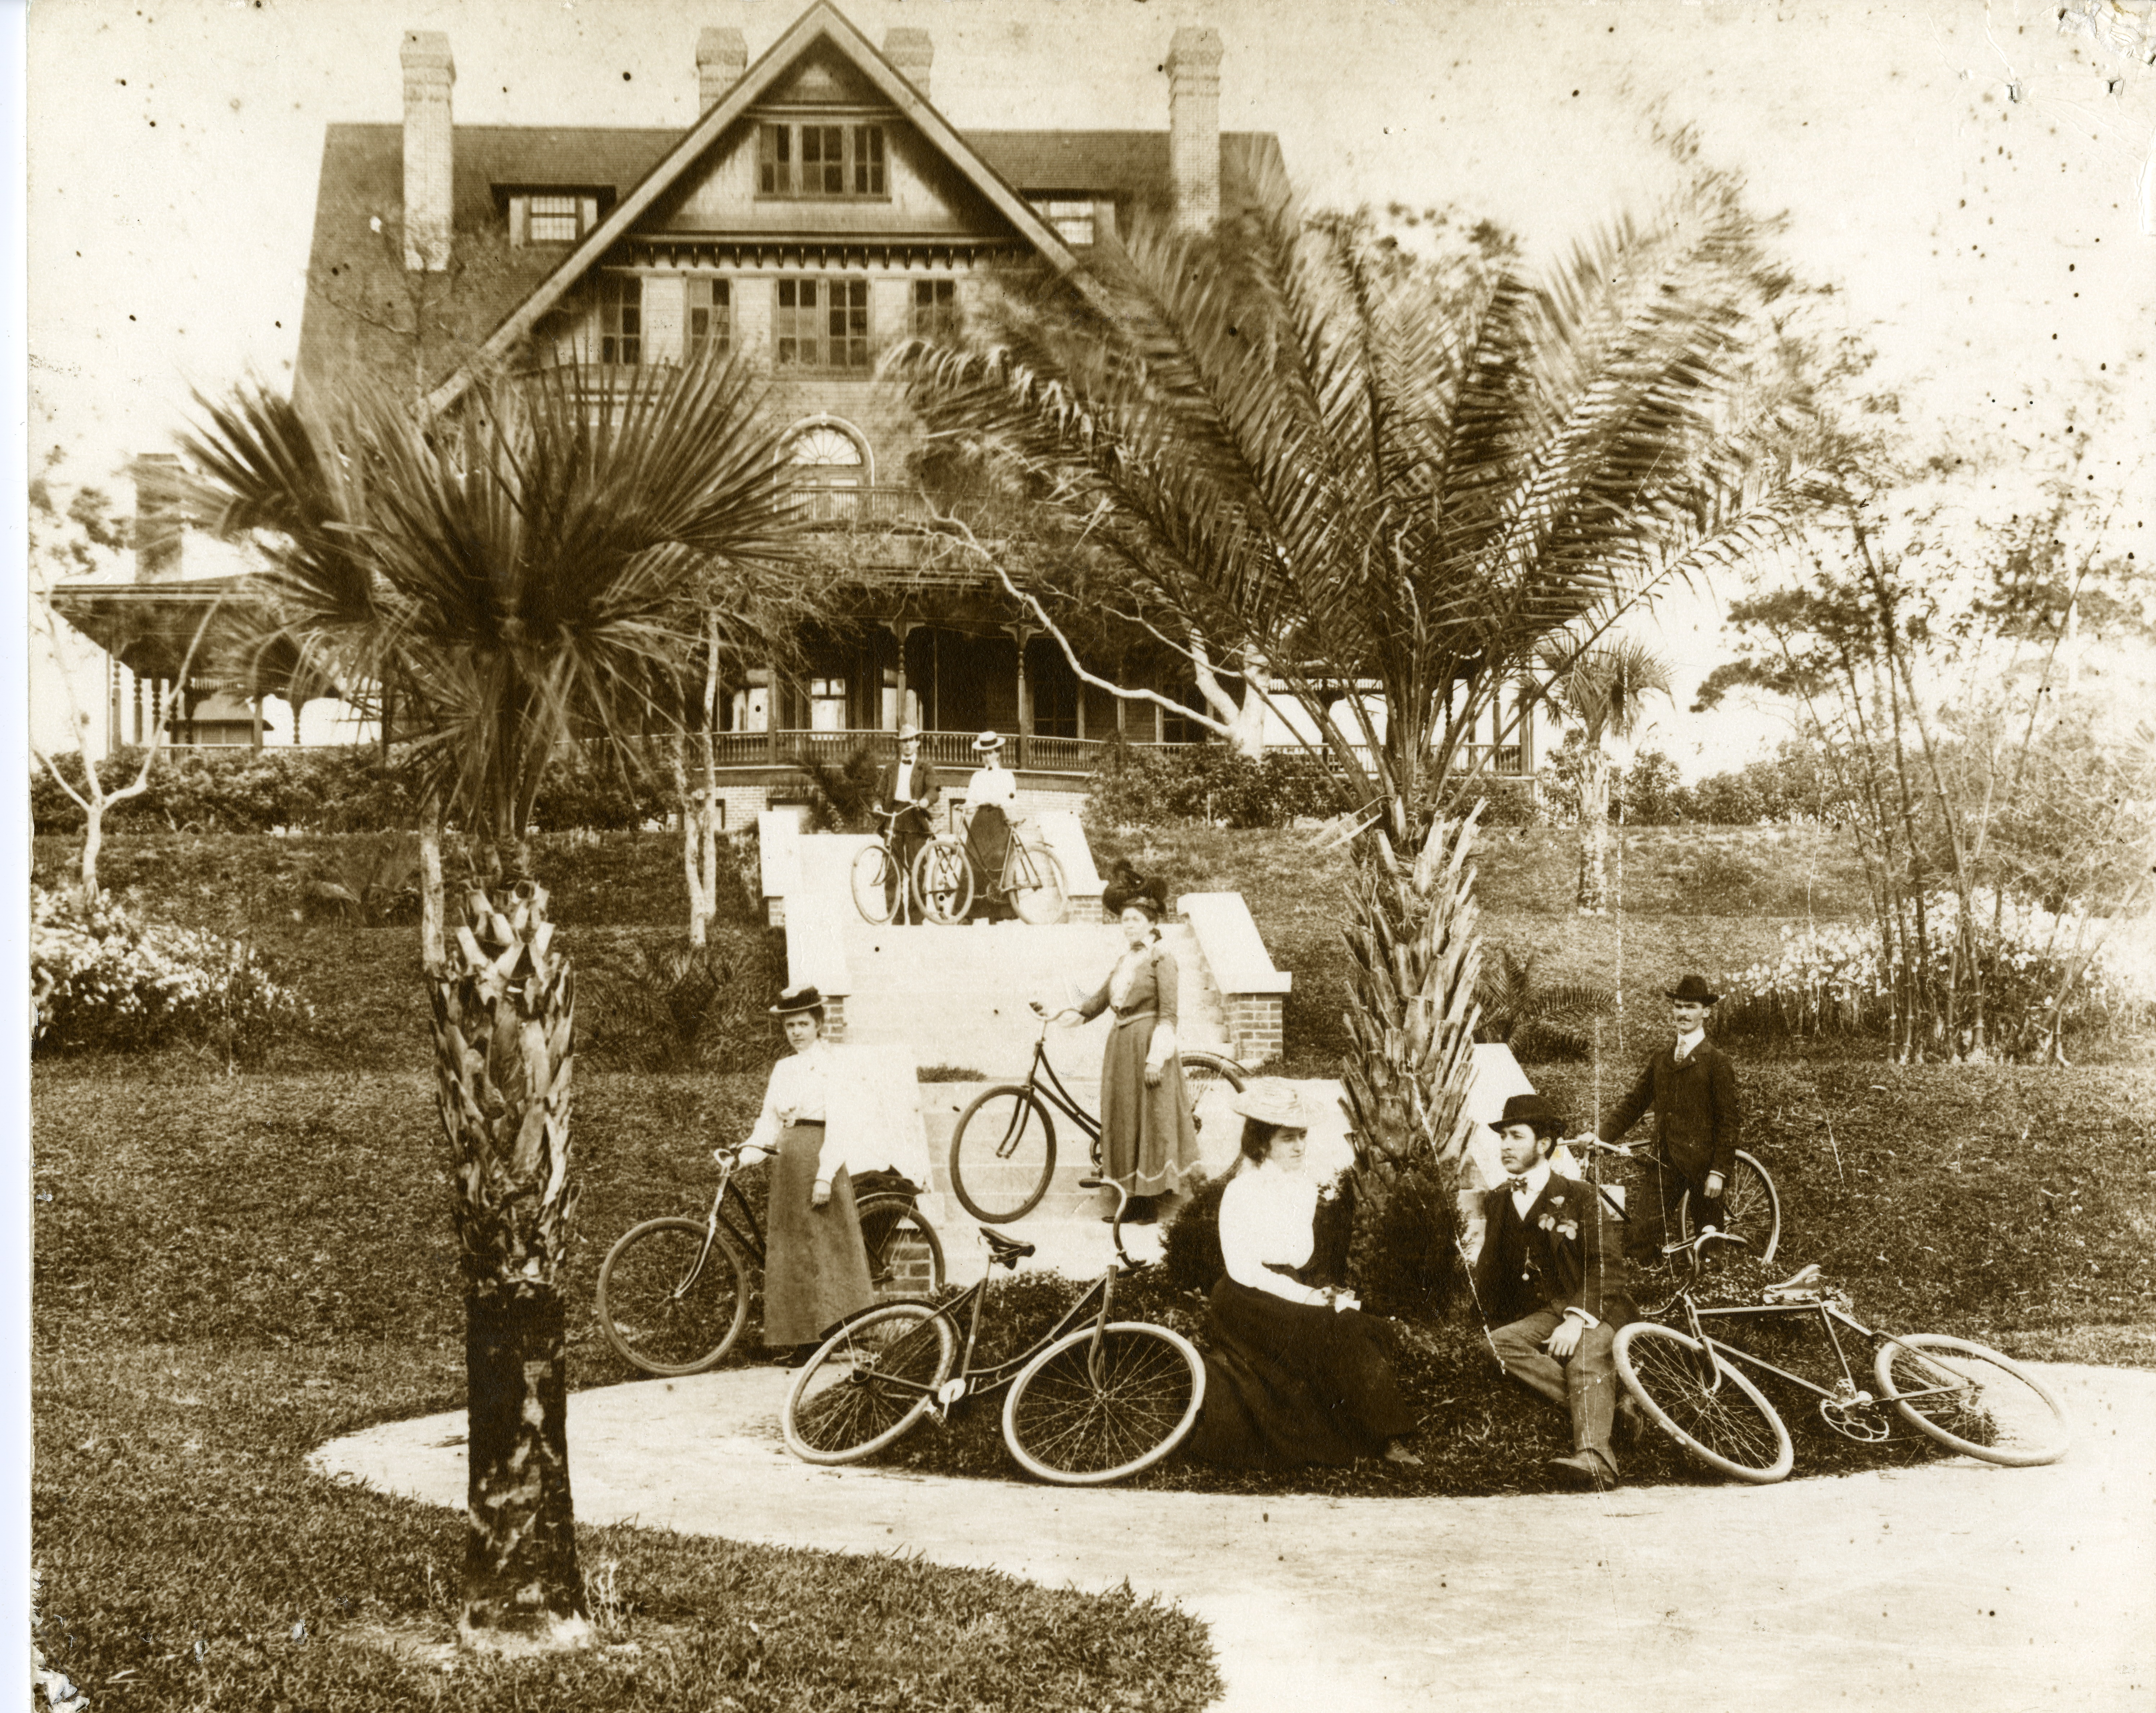 The Plant-Sumner House was originally built as employee housing for the Belleview-Biltmore Hotel. At 400,000 square feet, it was at one time Belleview-Biltmore was the world's largest wooden structure. The Plant-Sumner house was moved from its original site in Belleair to Clearwater around 1912.